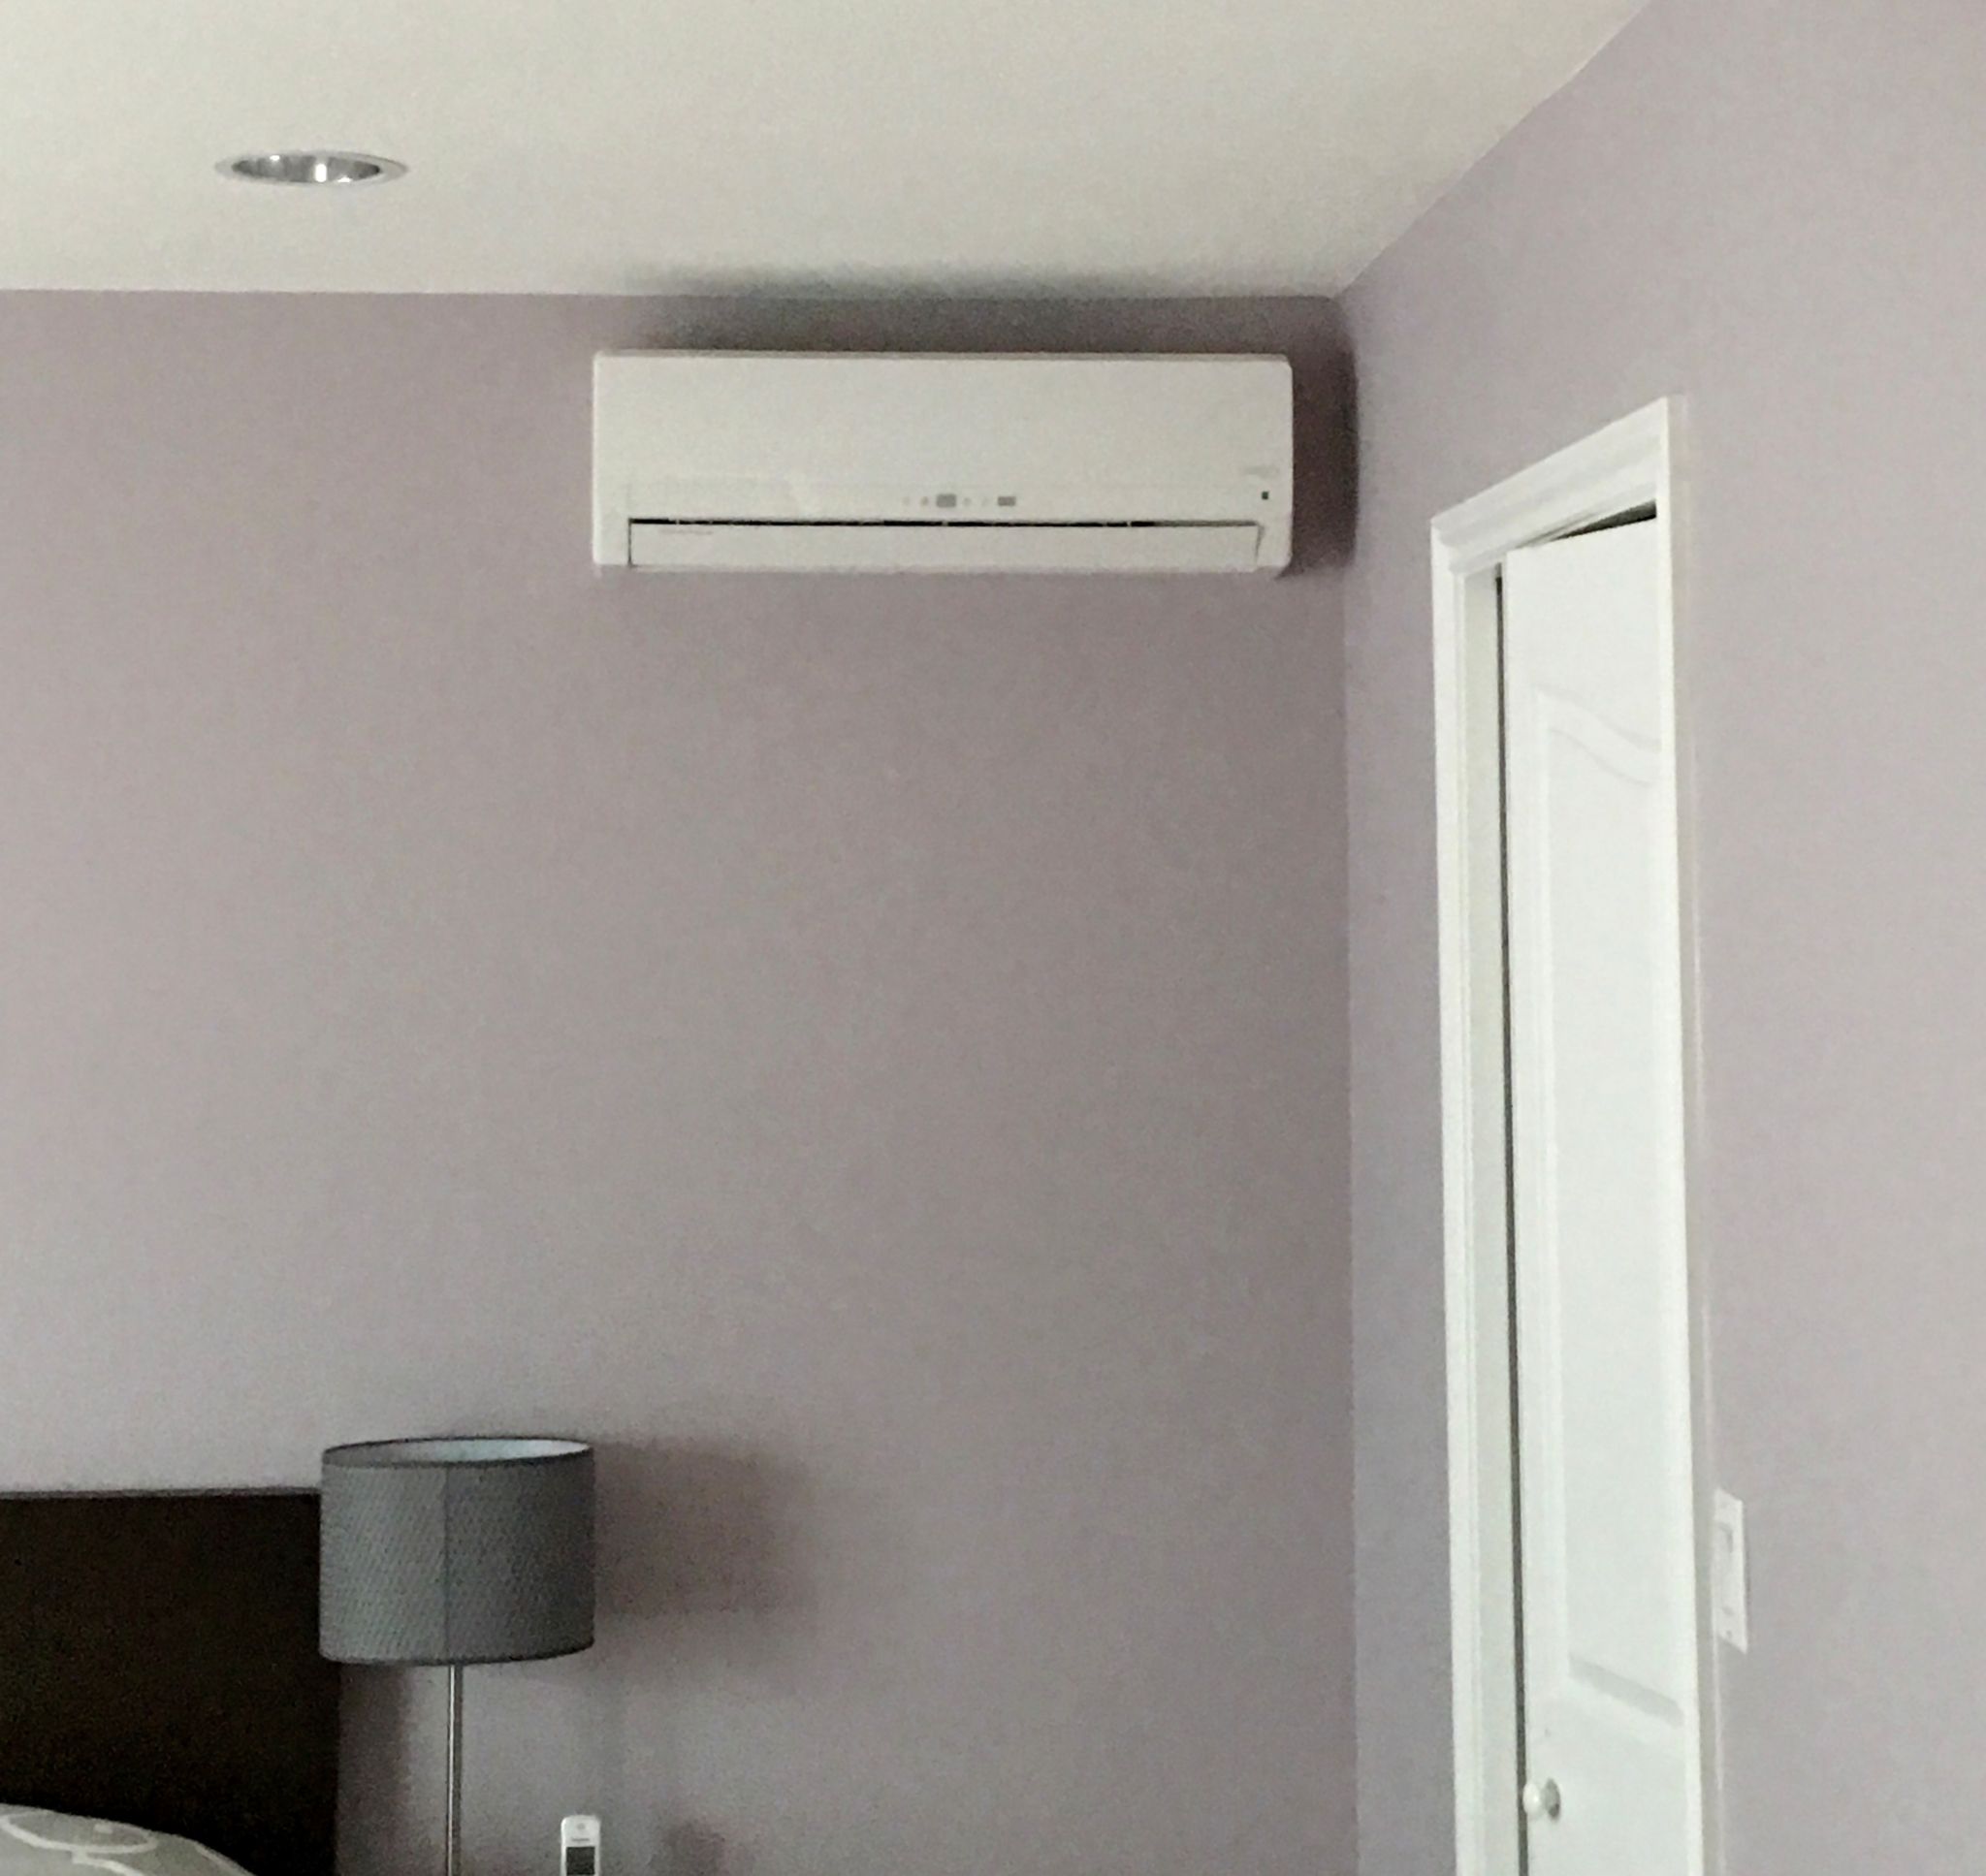 Rocky Point Heating & Air Conditioning in Port Moody: Ductless splits are a great way to add AC to home or business that does not have forced air ductwork throughout. They are Quiet, efficient, and powerful. Call us today and we can help you find the perfect fit for your AC needs